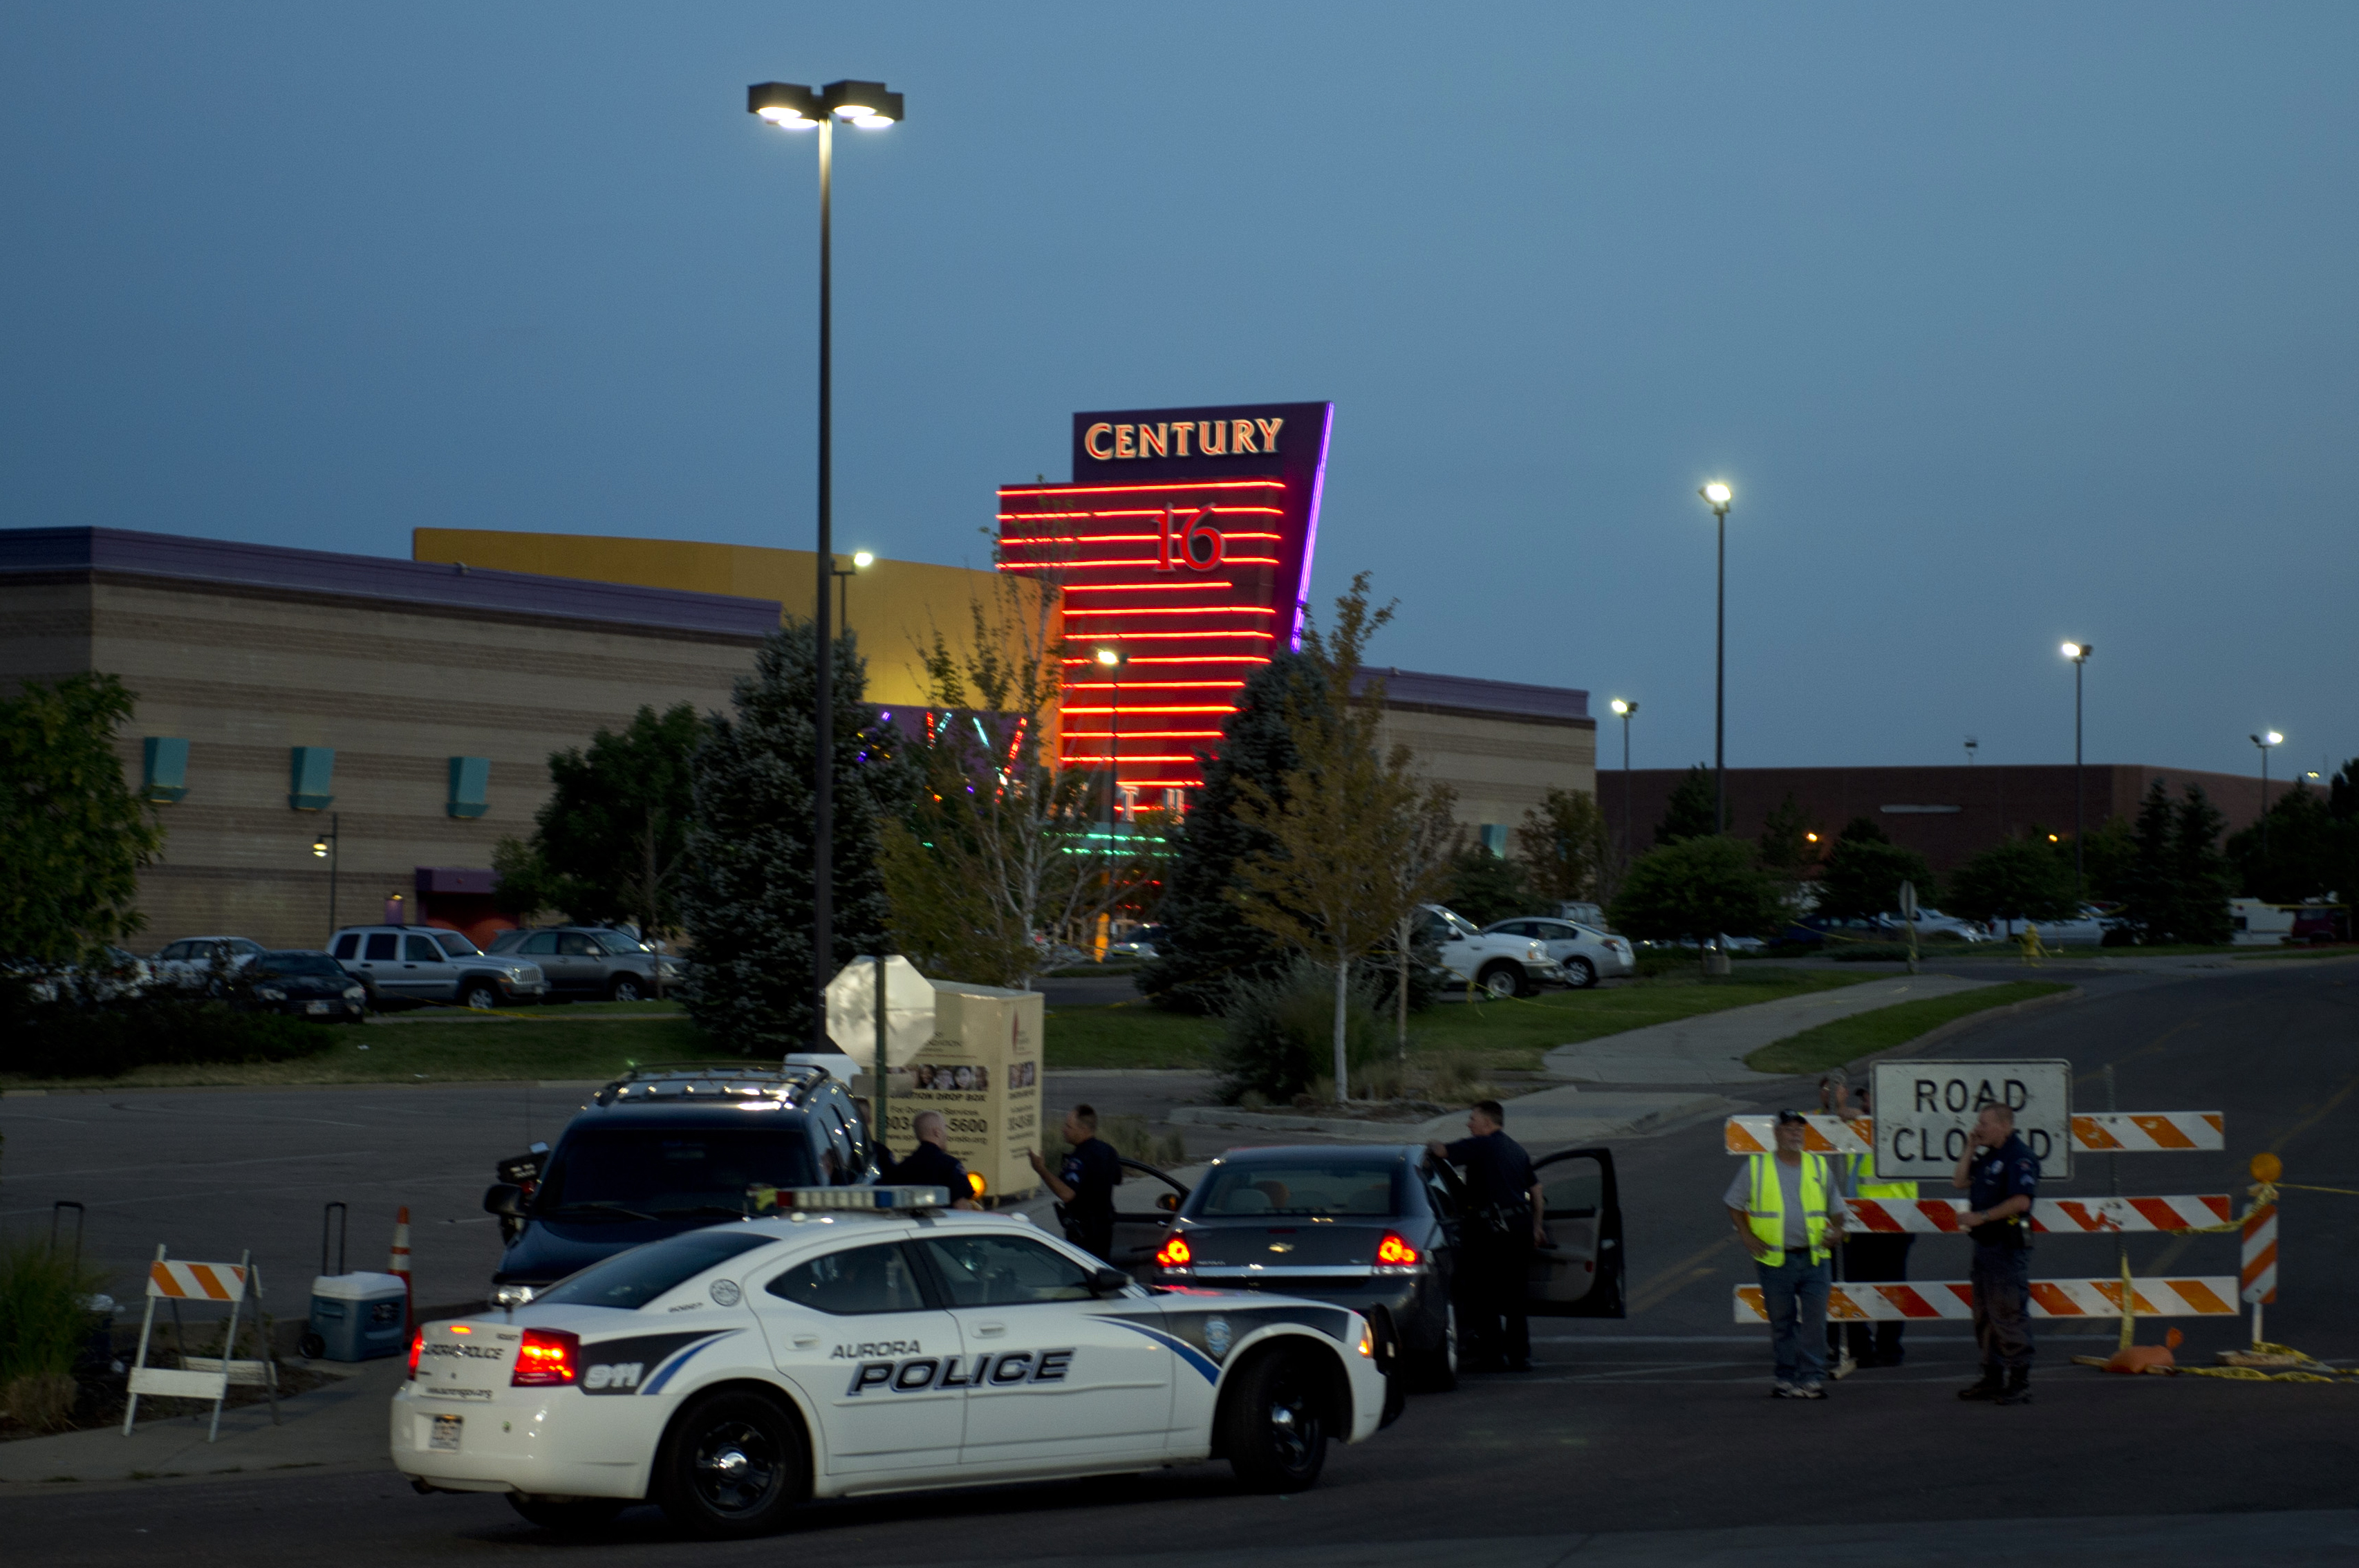 The scene outside the shooting at a movie theater in Aurora, Colorado, on July 23, 2012. (Getty)